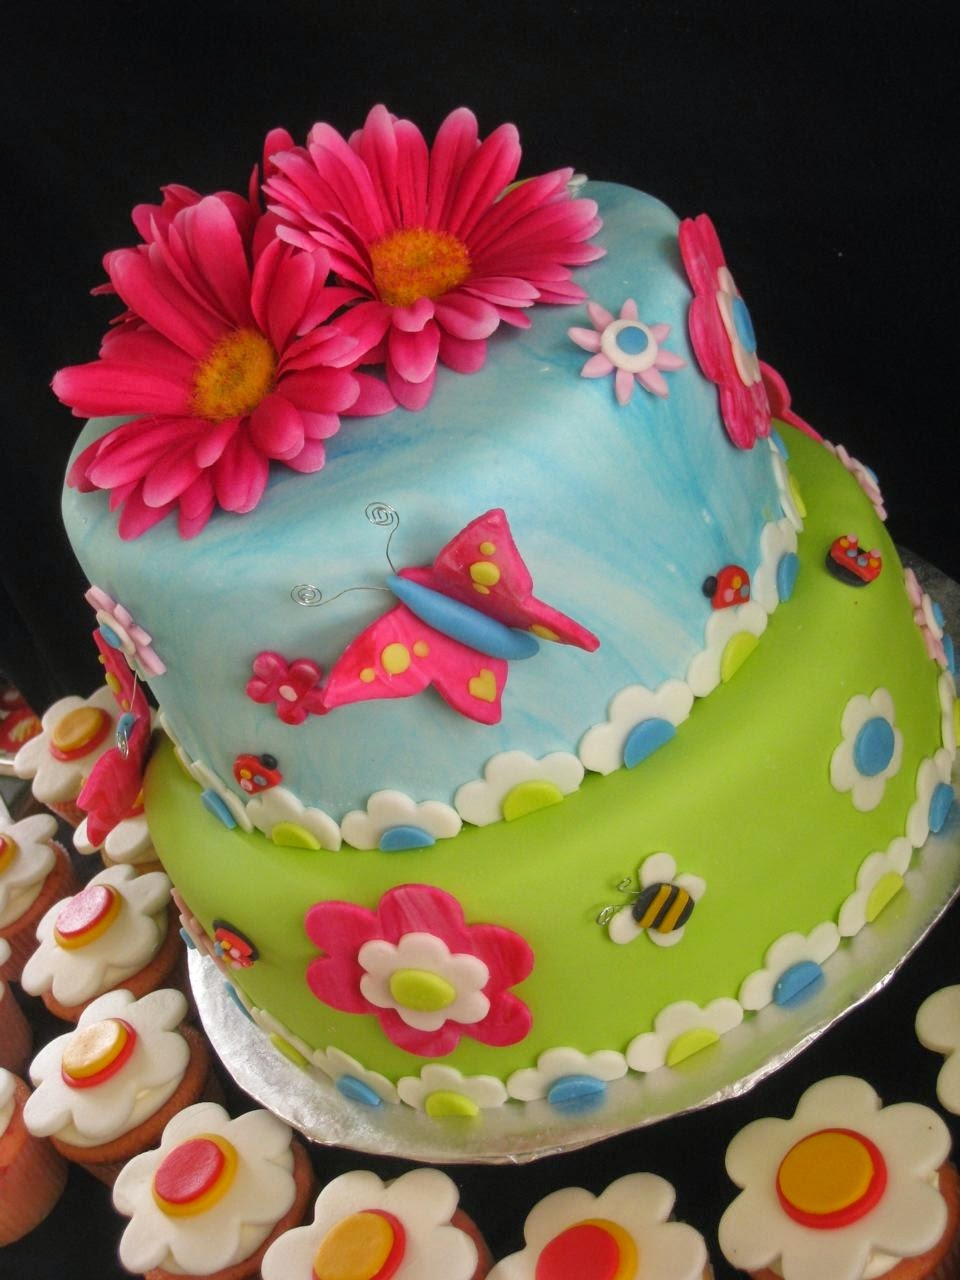 Cake Images In Birthday : Top 77 Photos Of Cakes For Birthday Girls Cakes Gallery